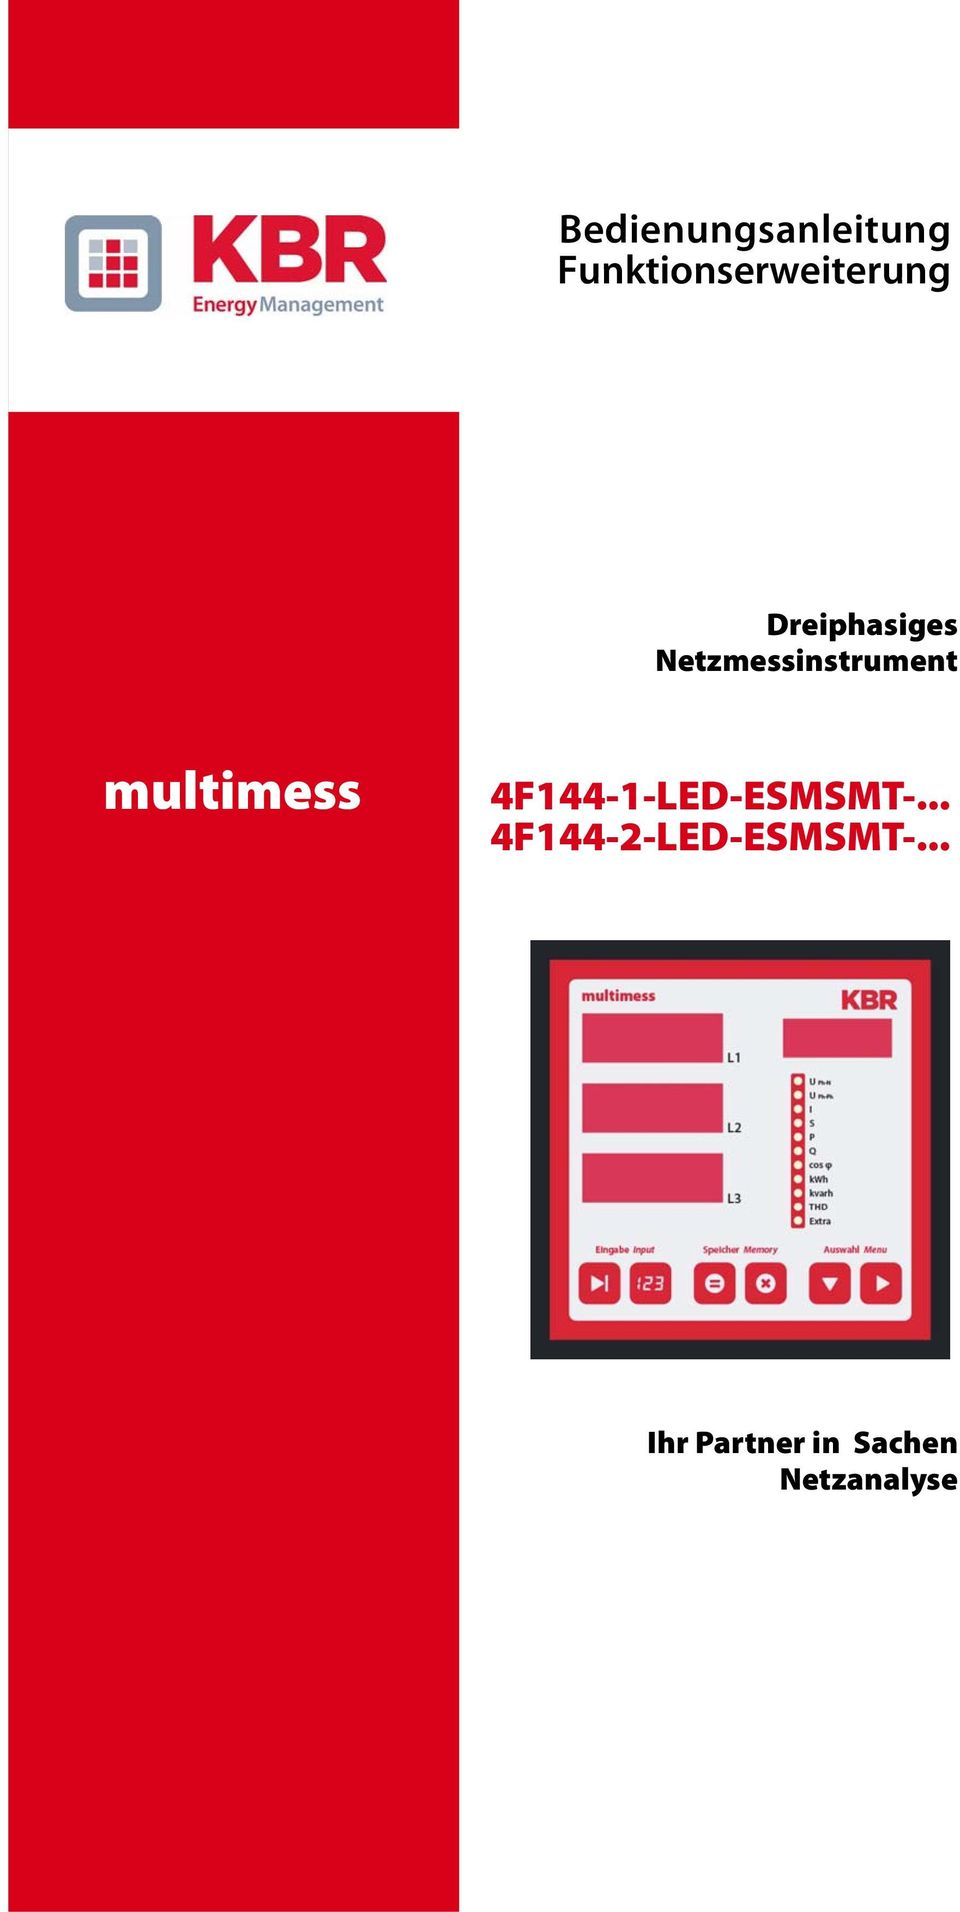 multimess 4F144-1-LED-ESMSMT-.